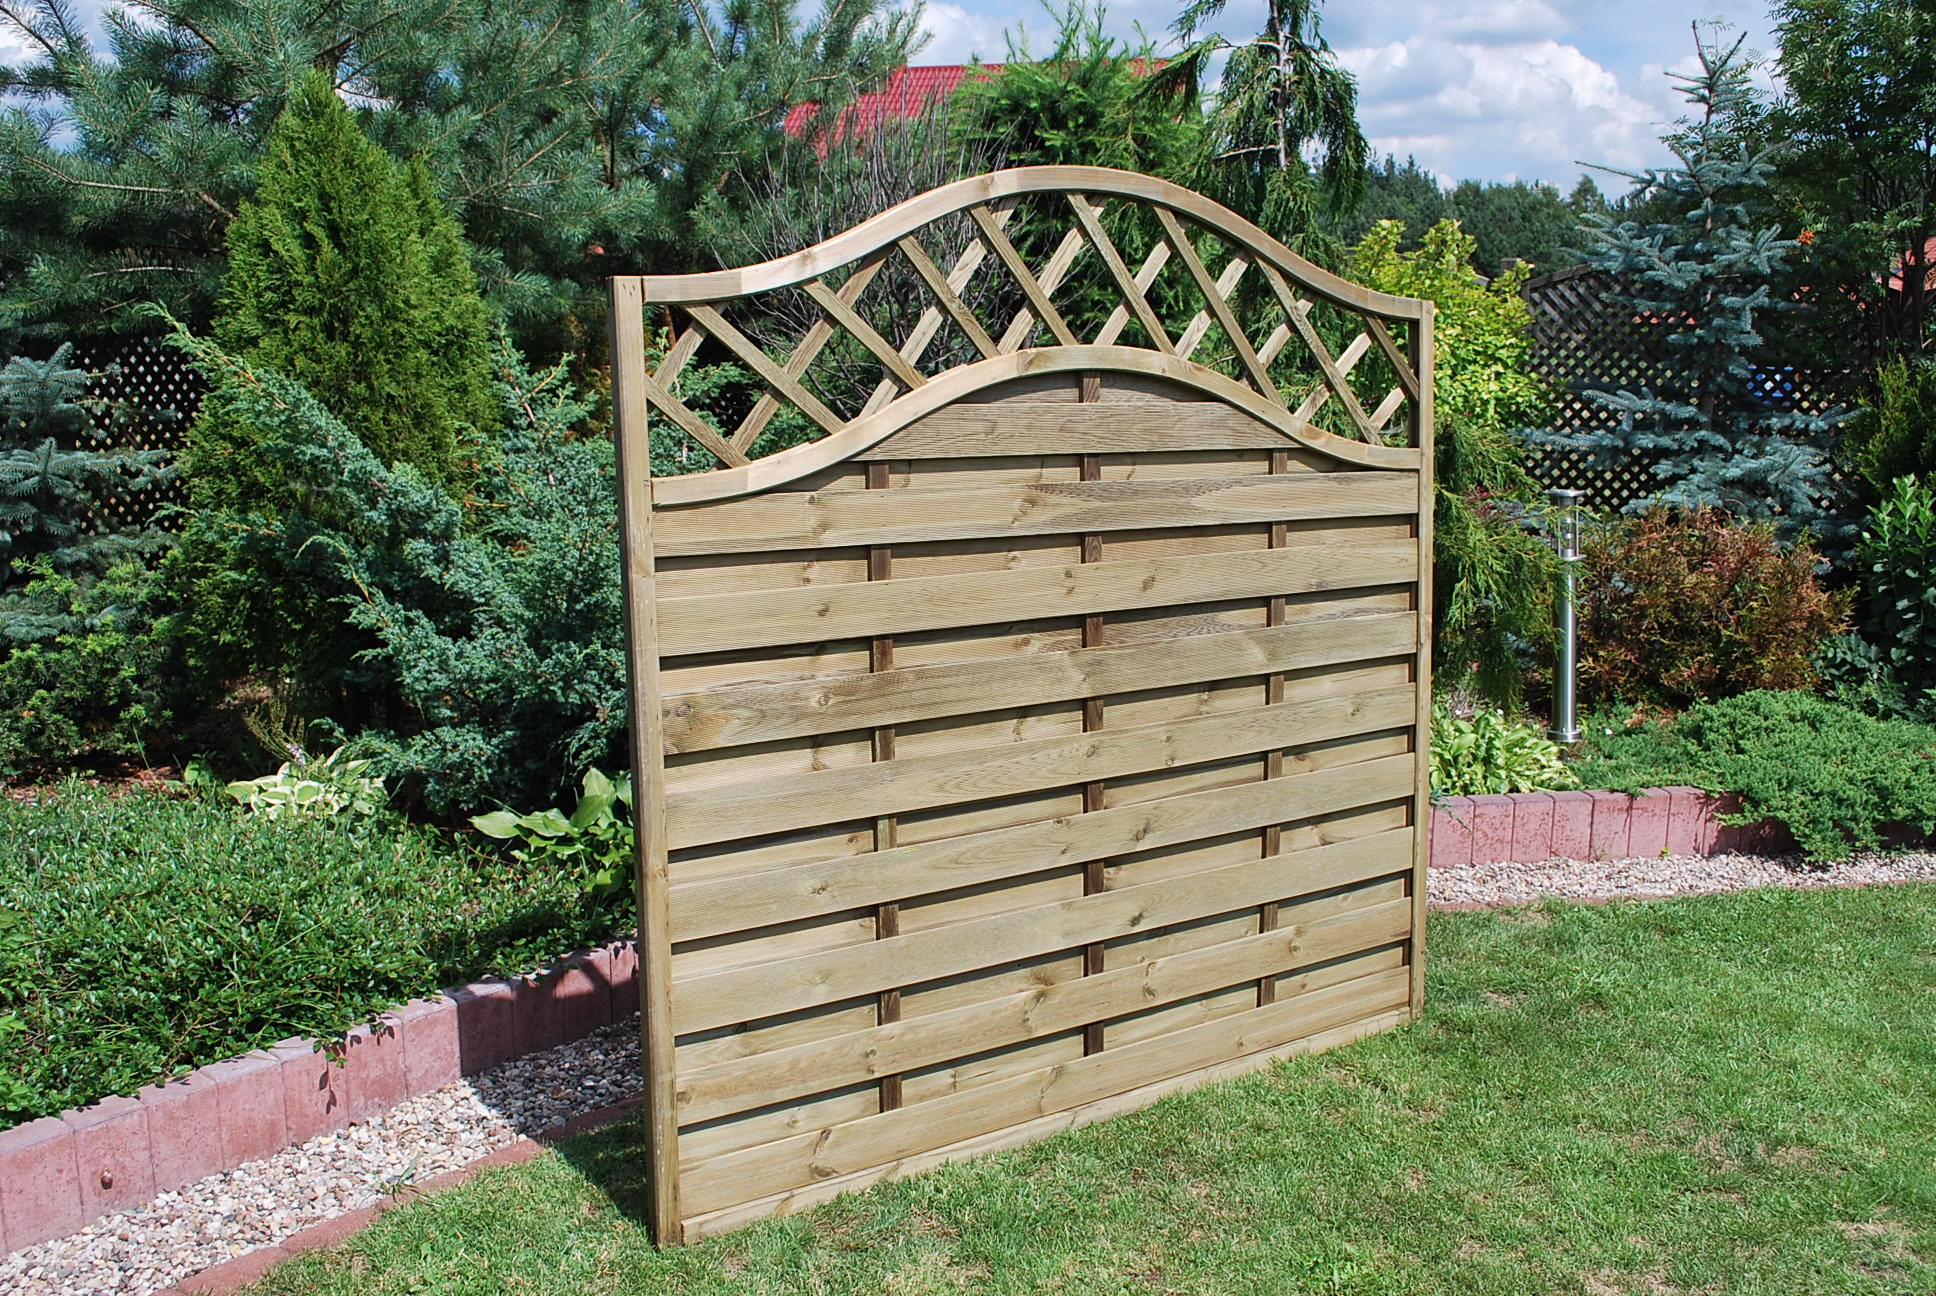 241, 272. SUSSEX WAVE - PREMIER FENCE PANEL (2)